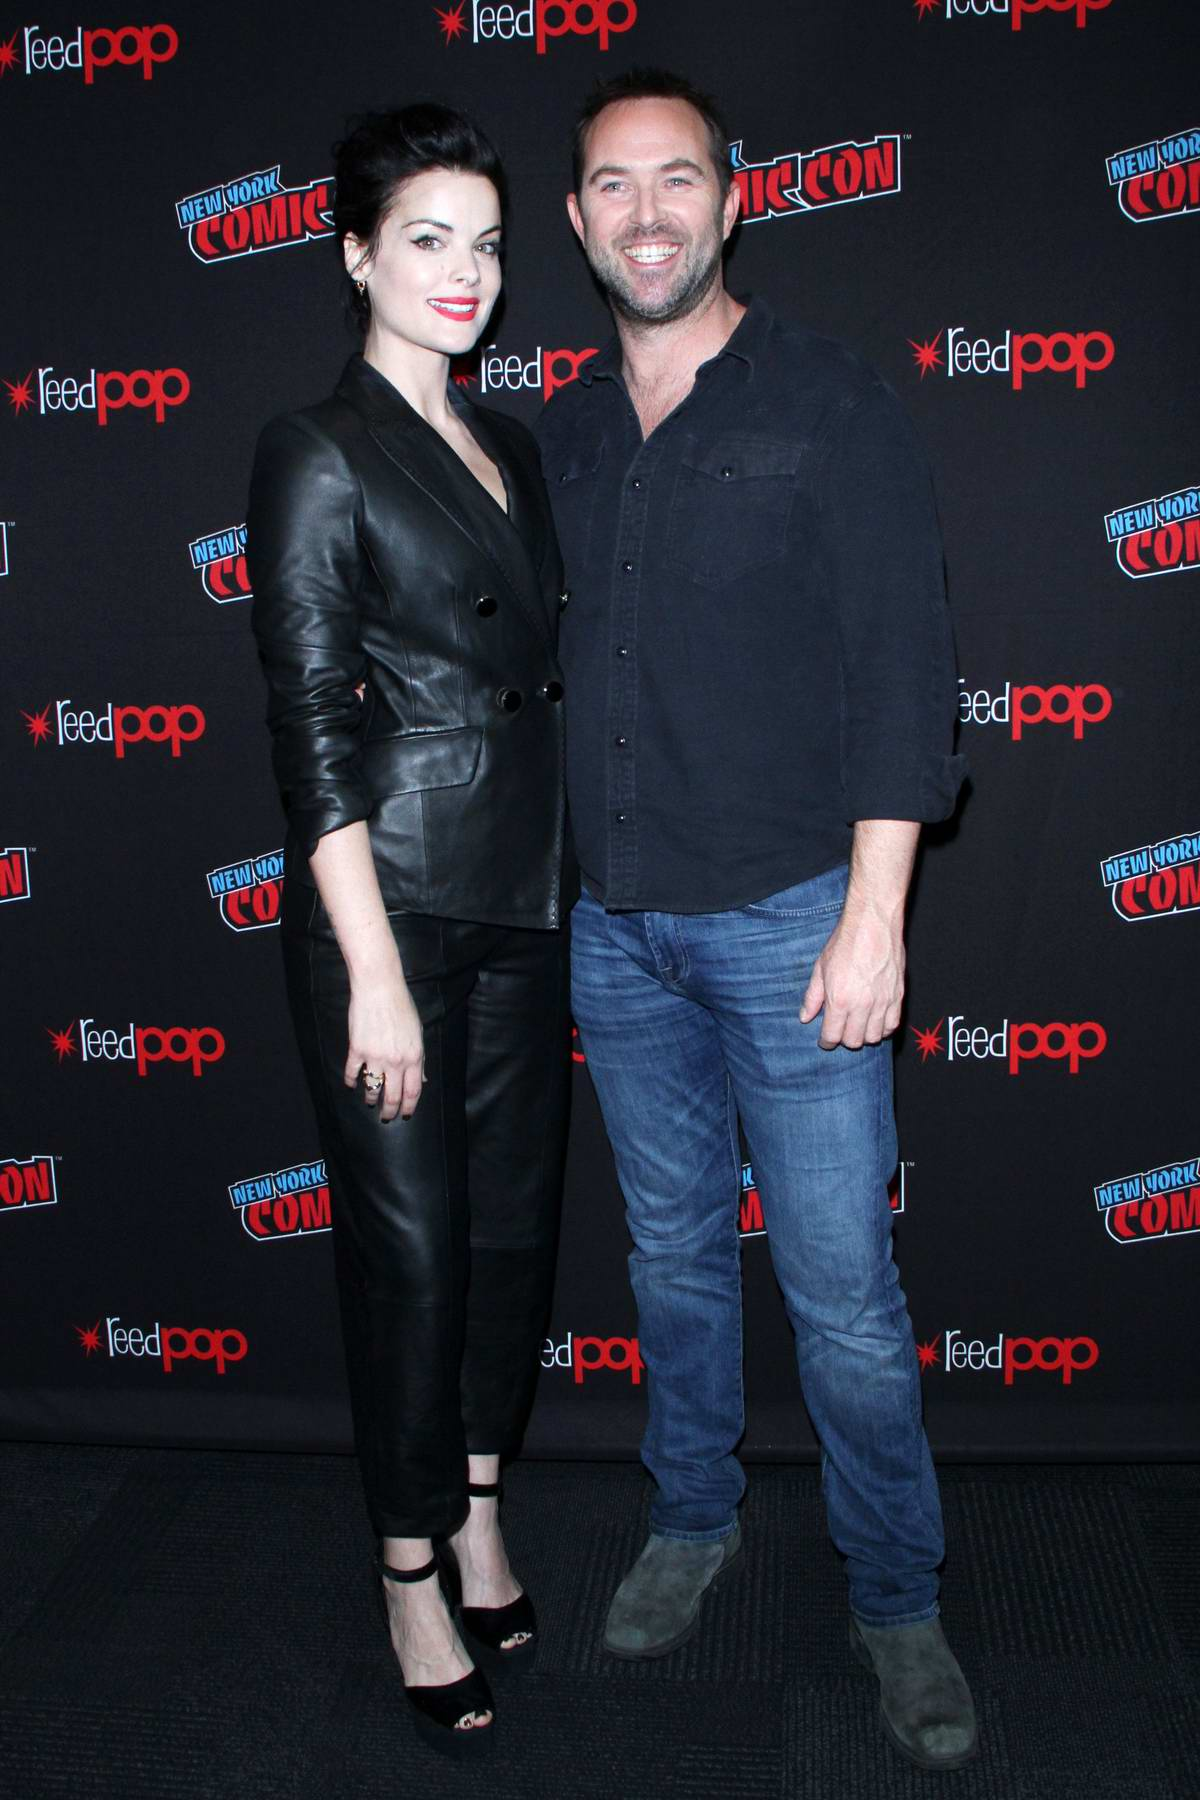 Jaimie Alexander attends the 'Blindspot' photocall during New York Comic Con 2018 (NYCC 2018) in New York City